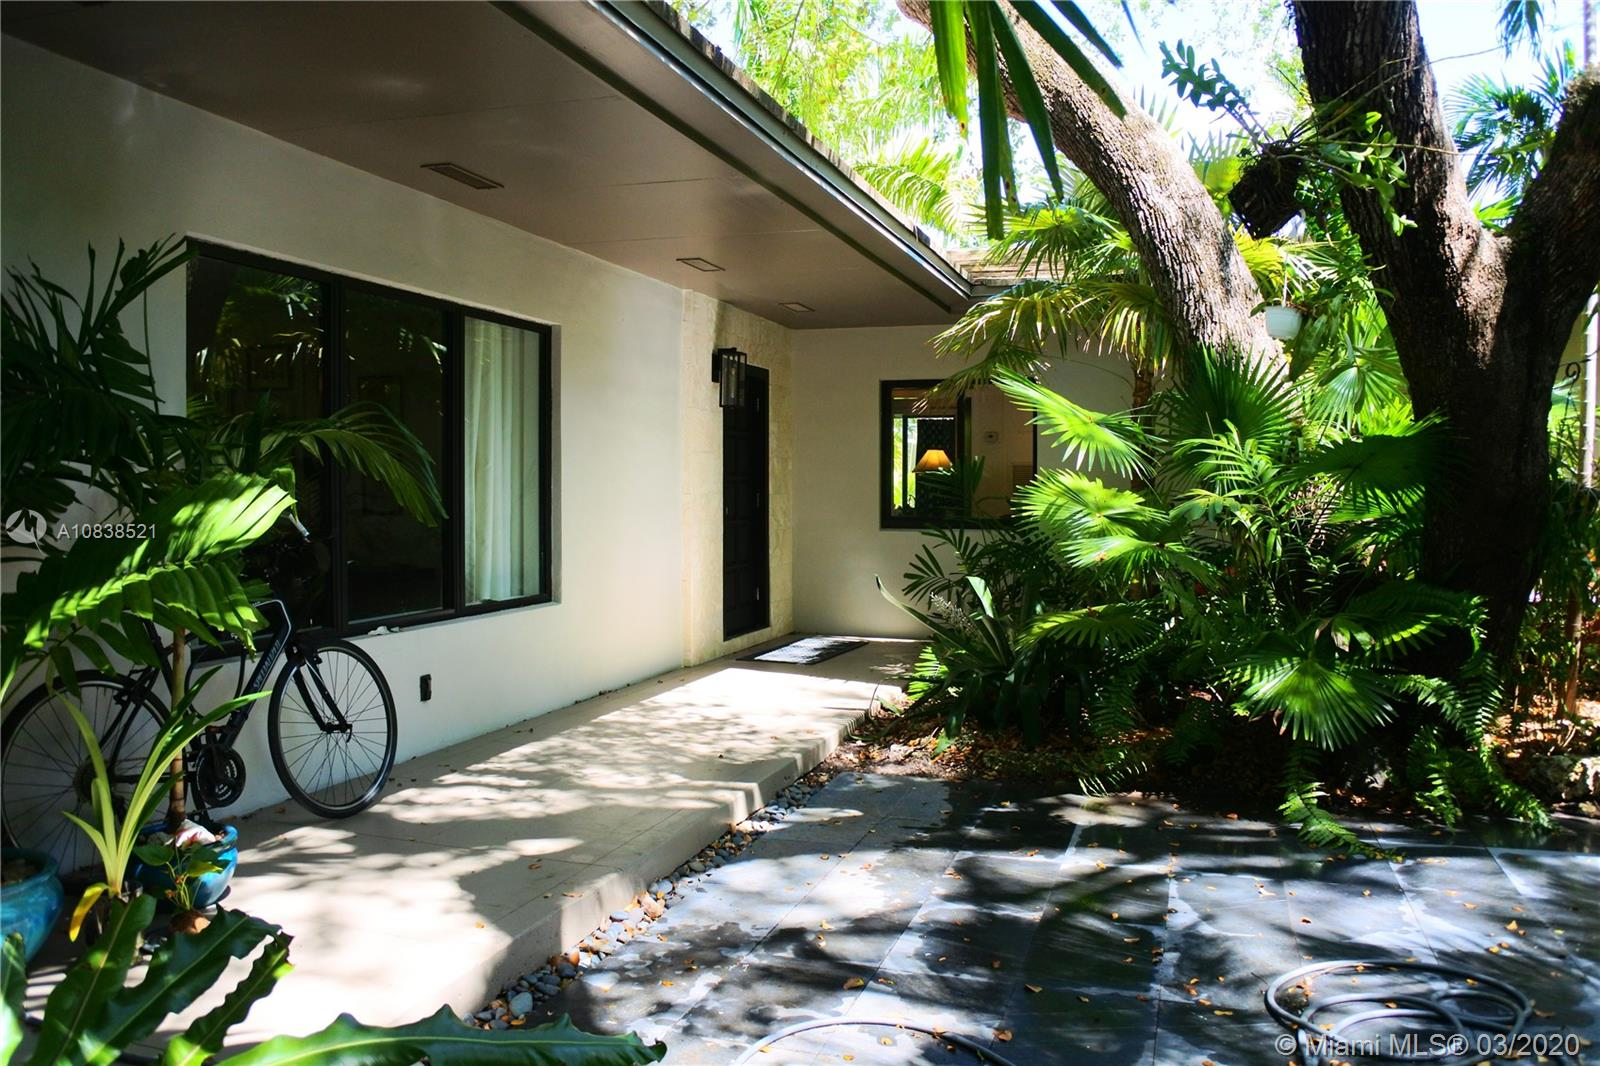 151 Edgewater Dr, Coral Gables, Florida 33133, 4 Bedrooms Bedrooms, 8 Rooms Rooms,2 BathroomsBathrooms,Residential,For Sale,151 Edgewater Dr,A10838521